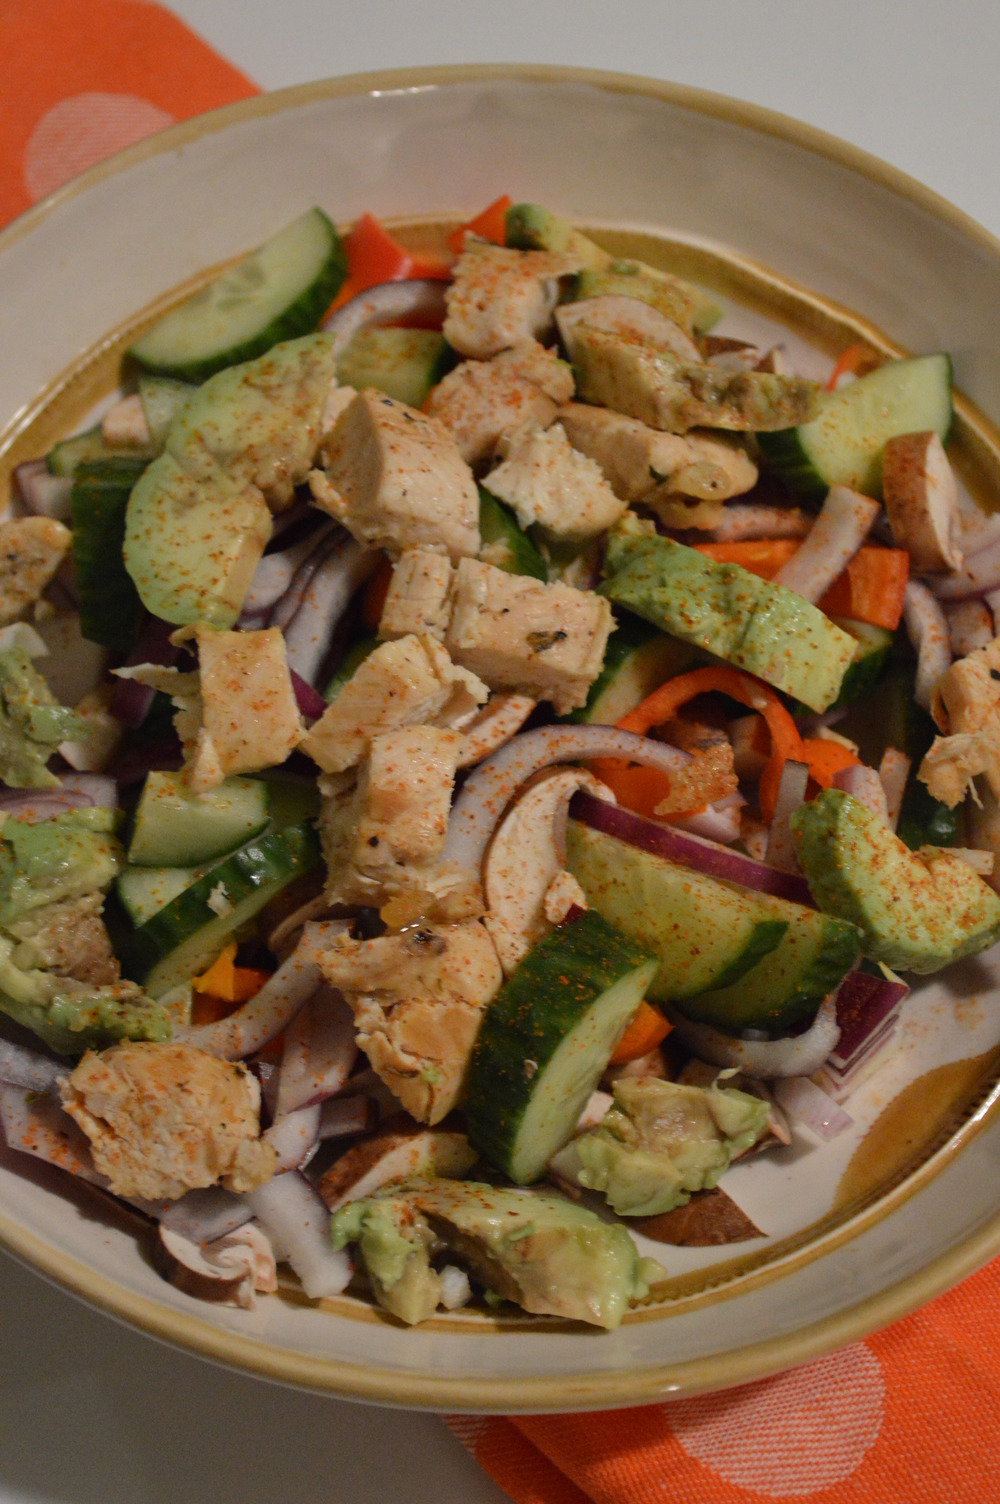 Chicken & Veggies